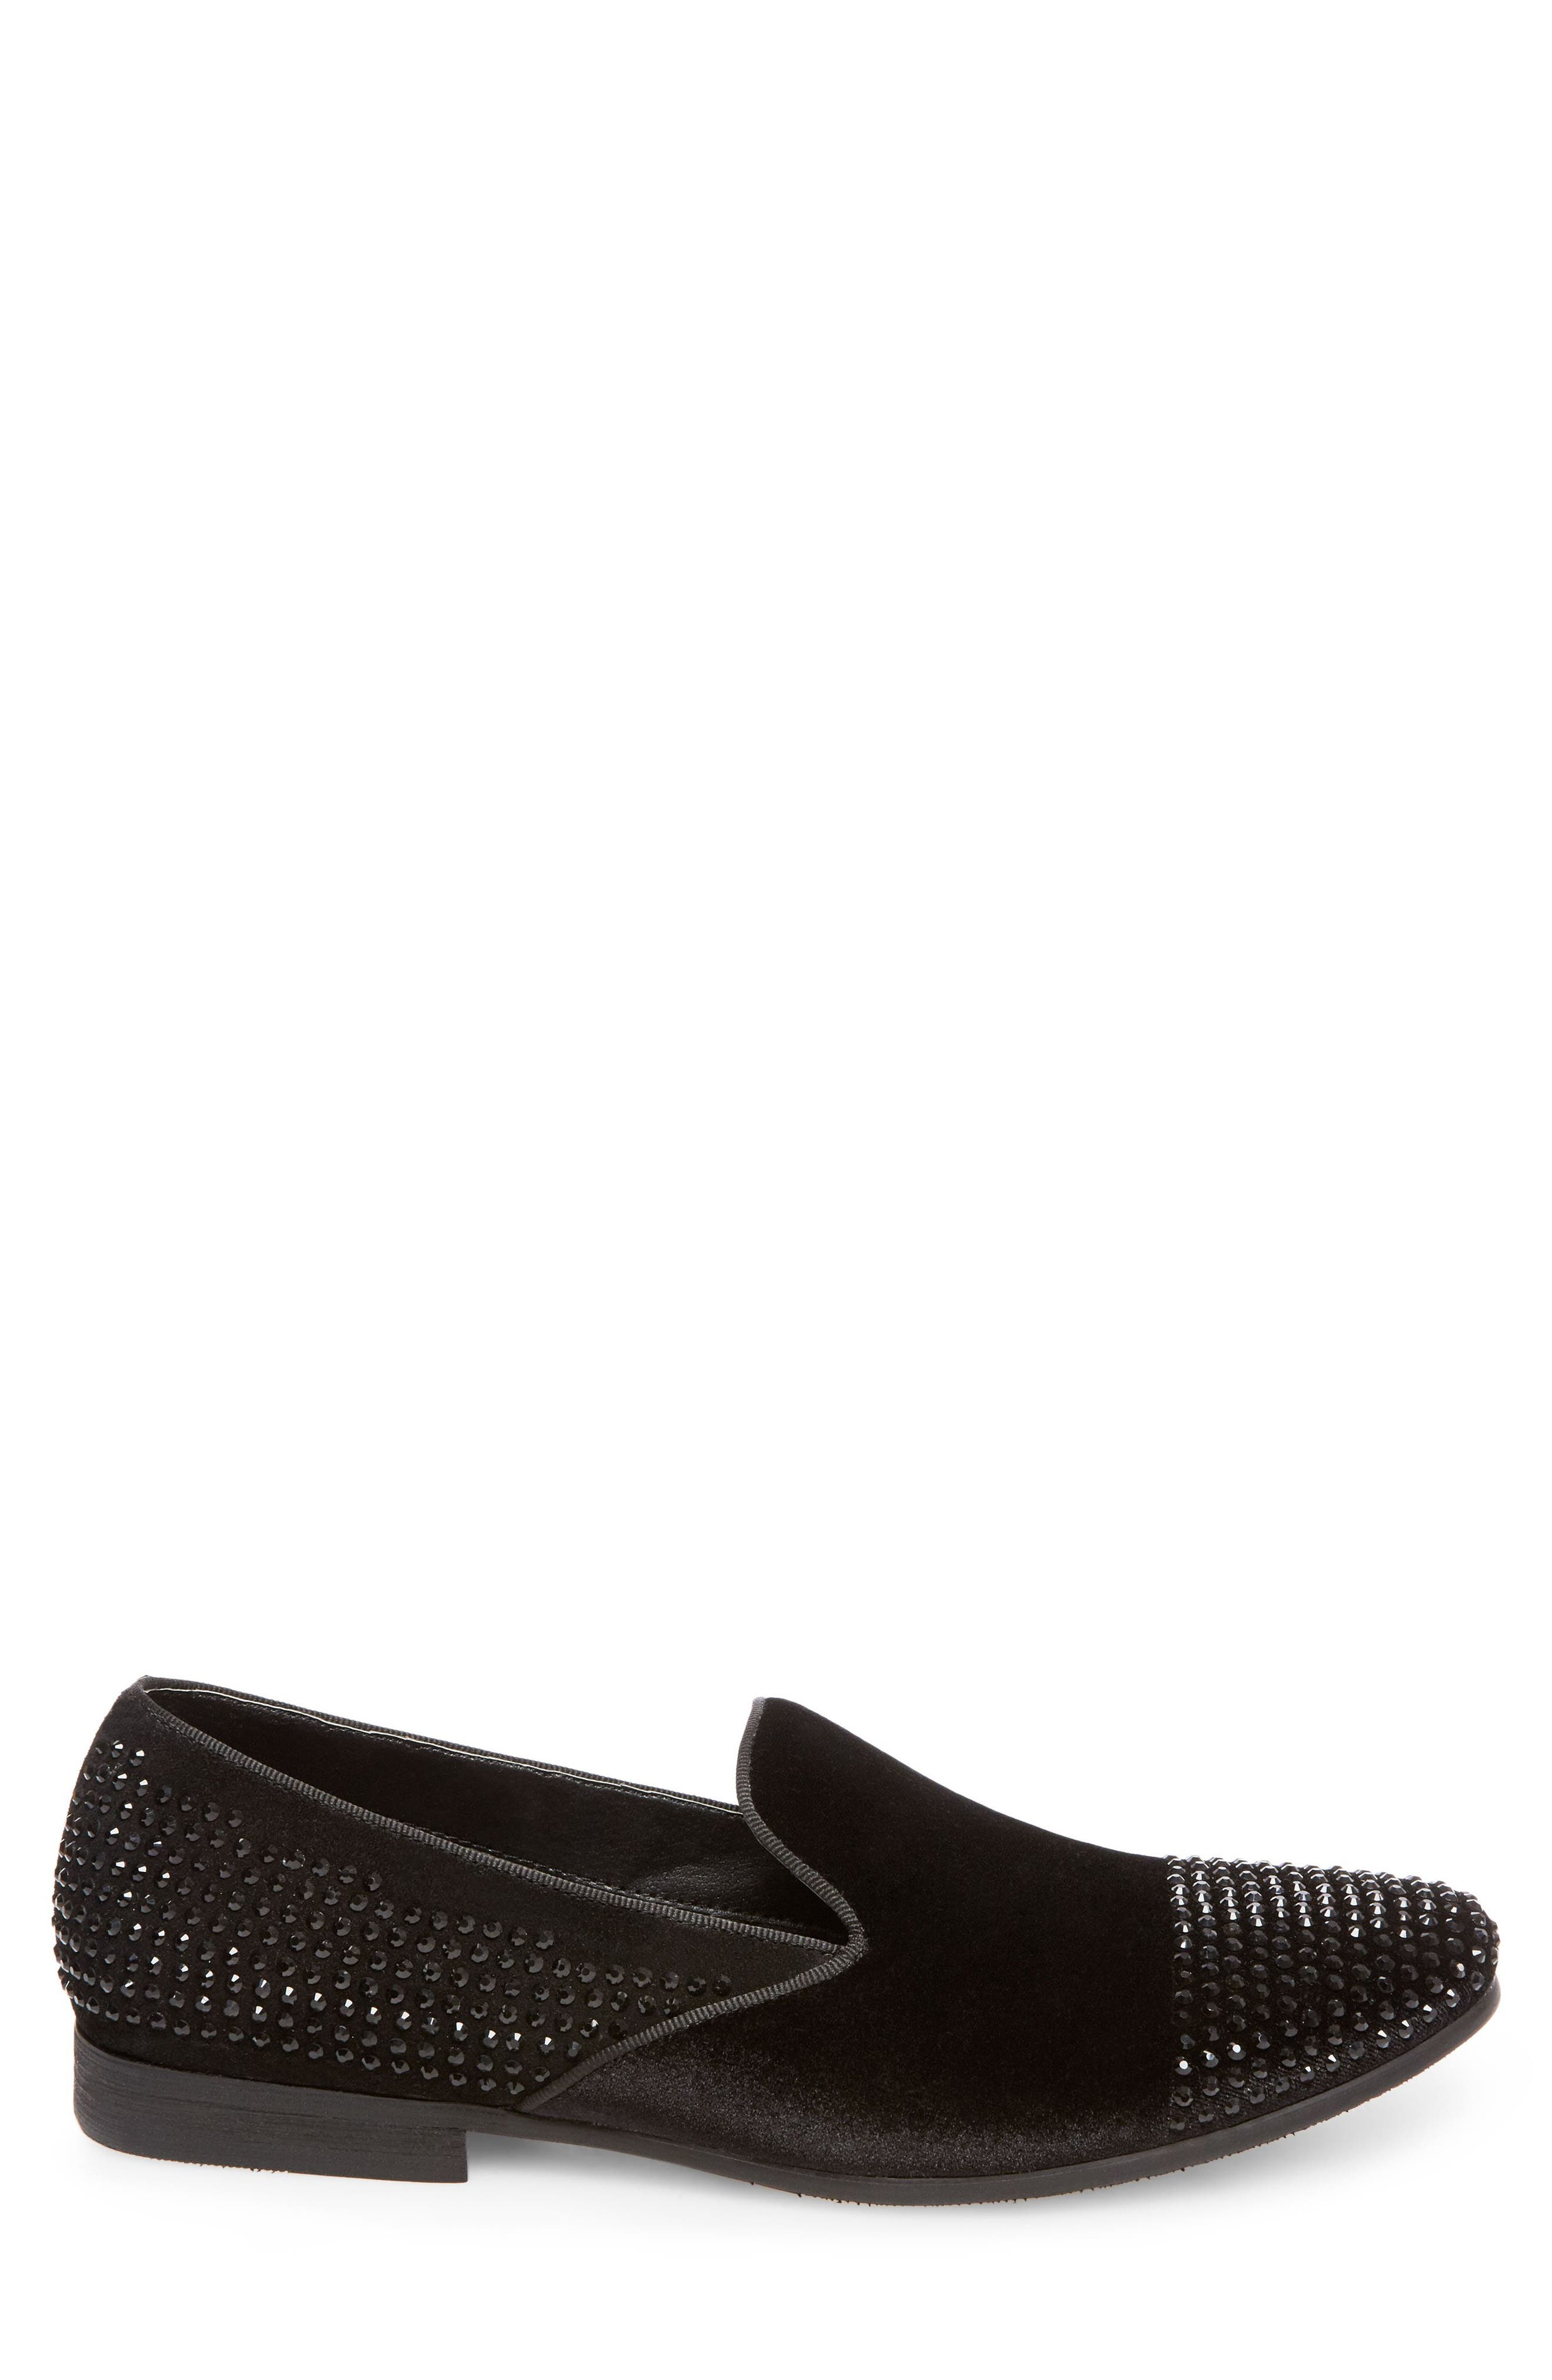 Clarity Loafer,                             Alternate thumbnail 3, color,                             Black Fabric